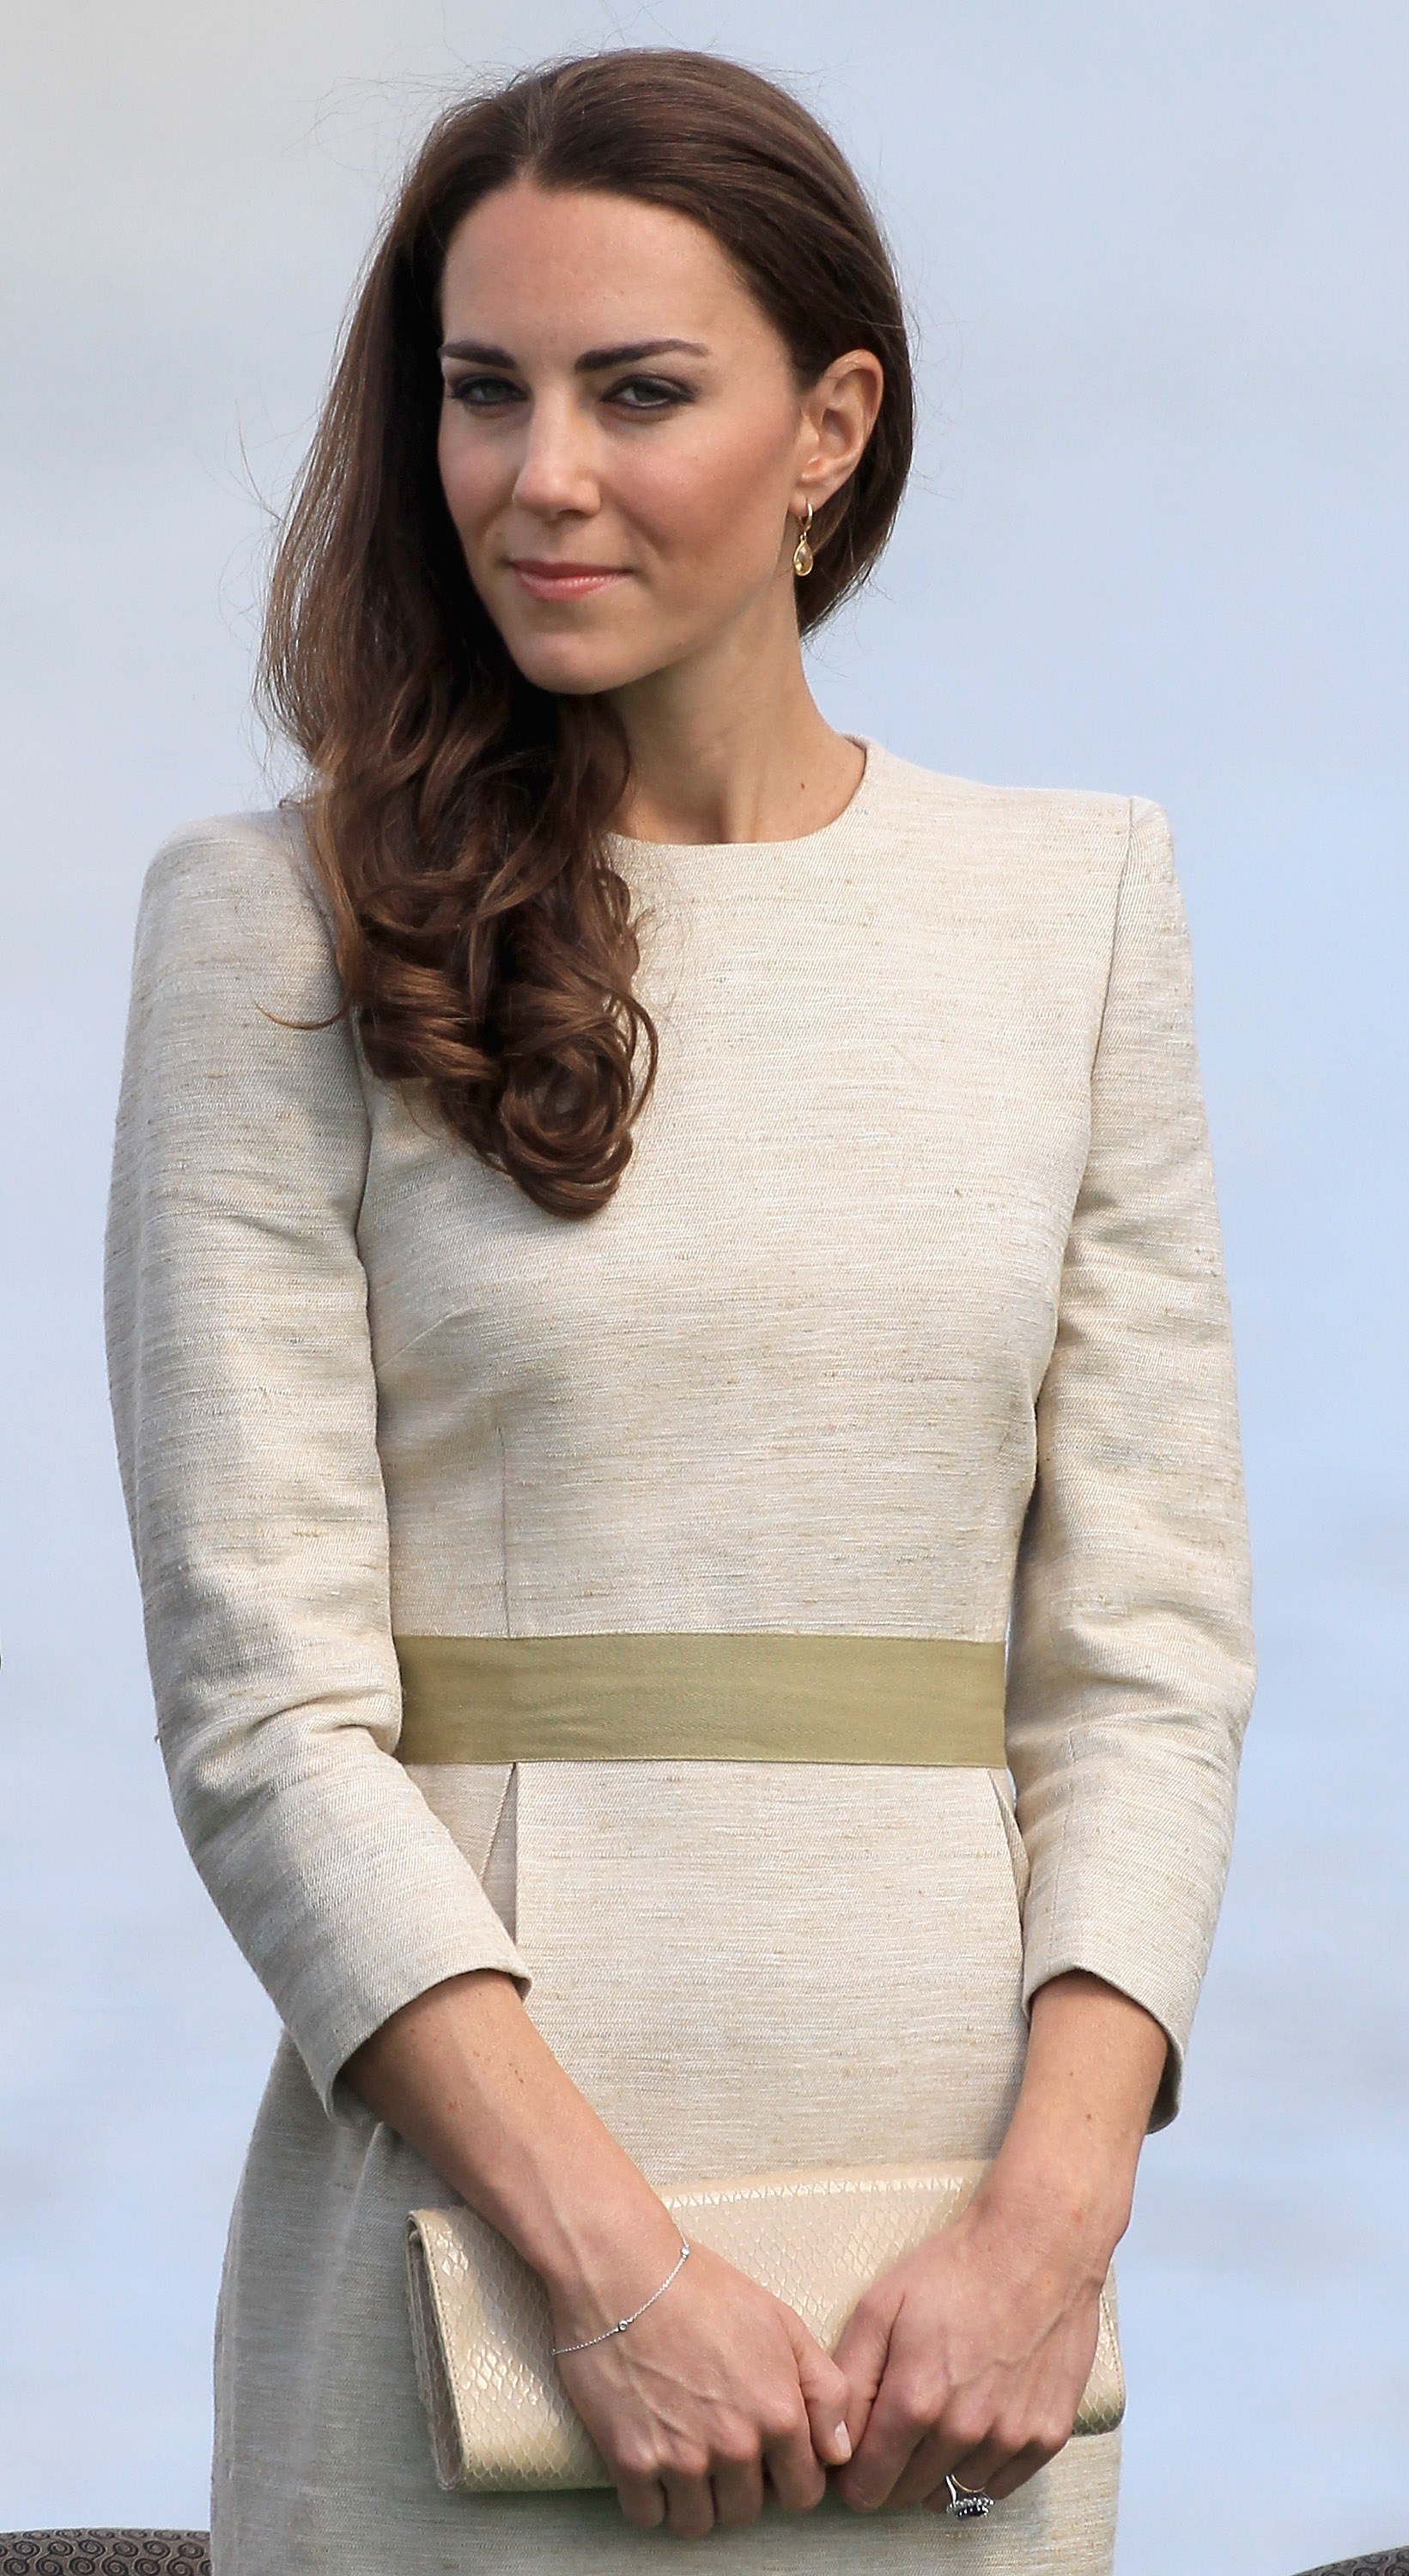 July 5th, 2011  Attending an official welcome ceremony at the Somba K'e Civic Plaza on in Yellowknife, Canada.  Kate wears a silk linen weave Marlene Birger Bullet Dress with an eggshell envelope clutch and Kiki McDonough Citrine Drop earrings.